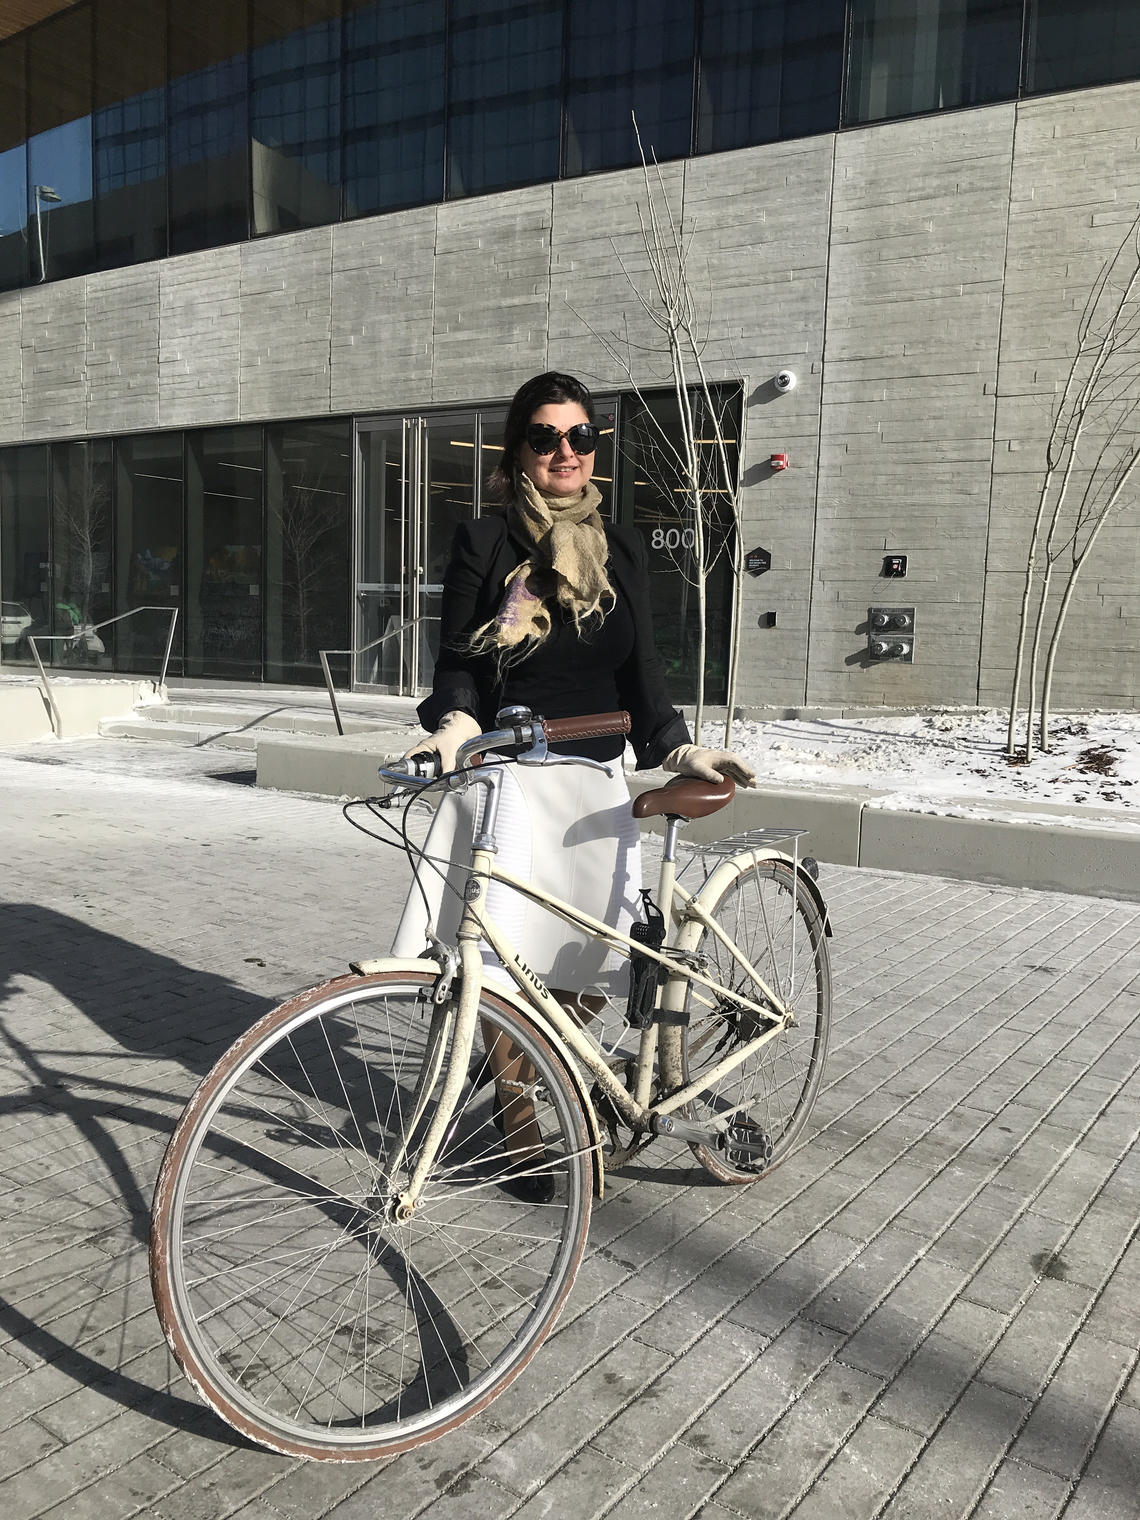 Farnaz Sadeghpour, associate professor in the Schulich School of Engineering, is leading a workshop on winter cycling research collaborations in Canada at the 2019 Winter Cycling Congress.